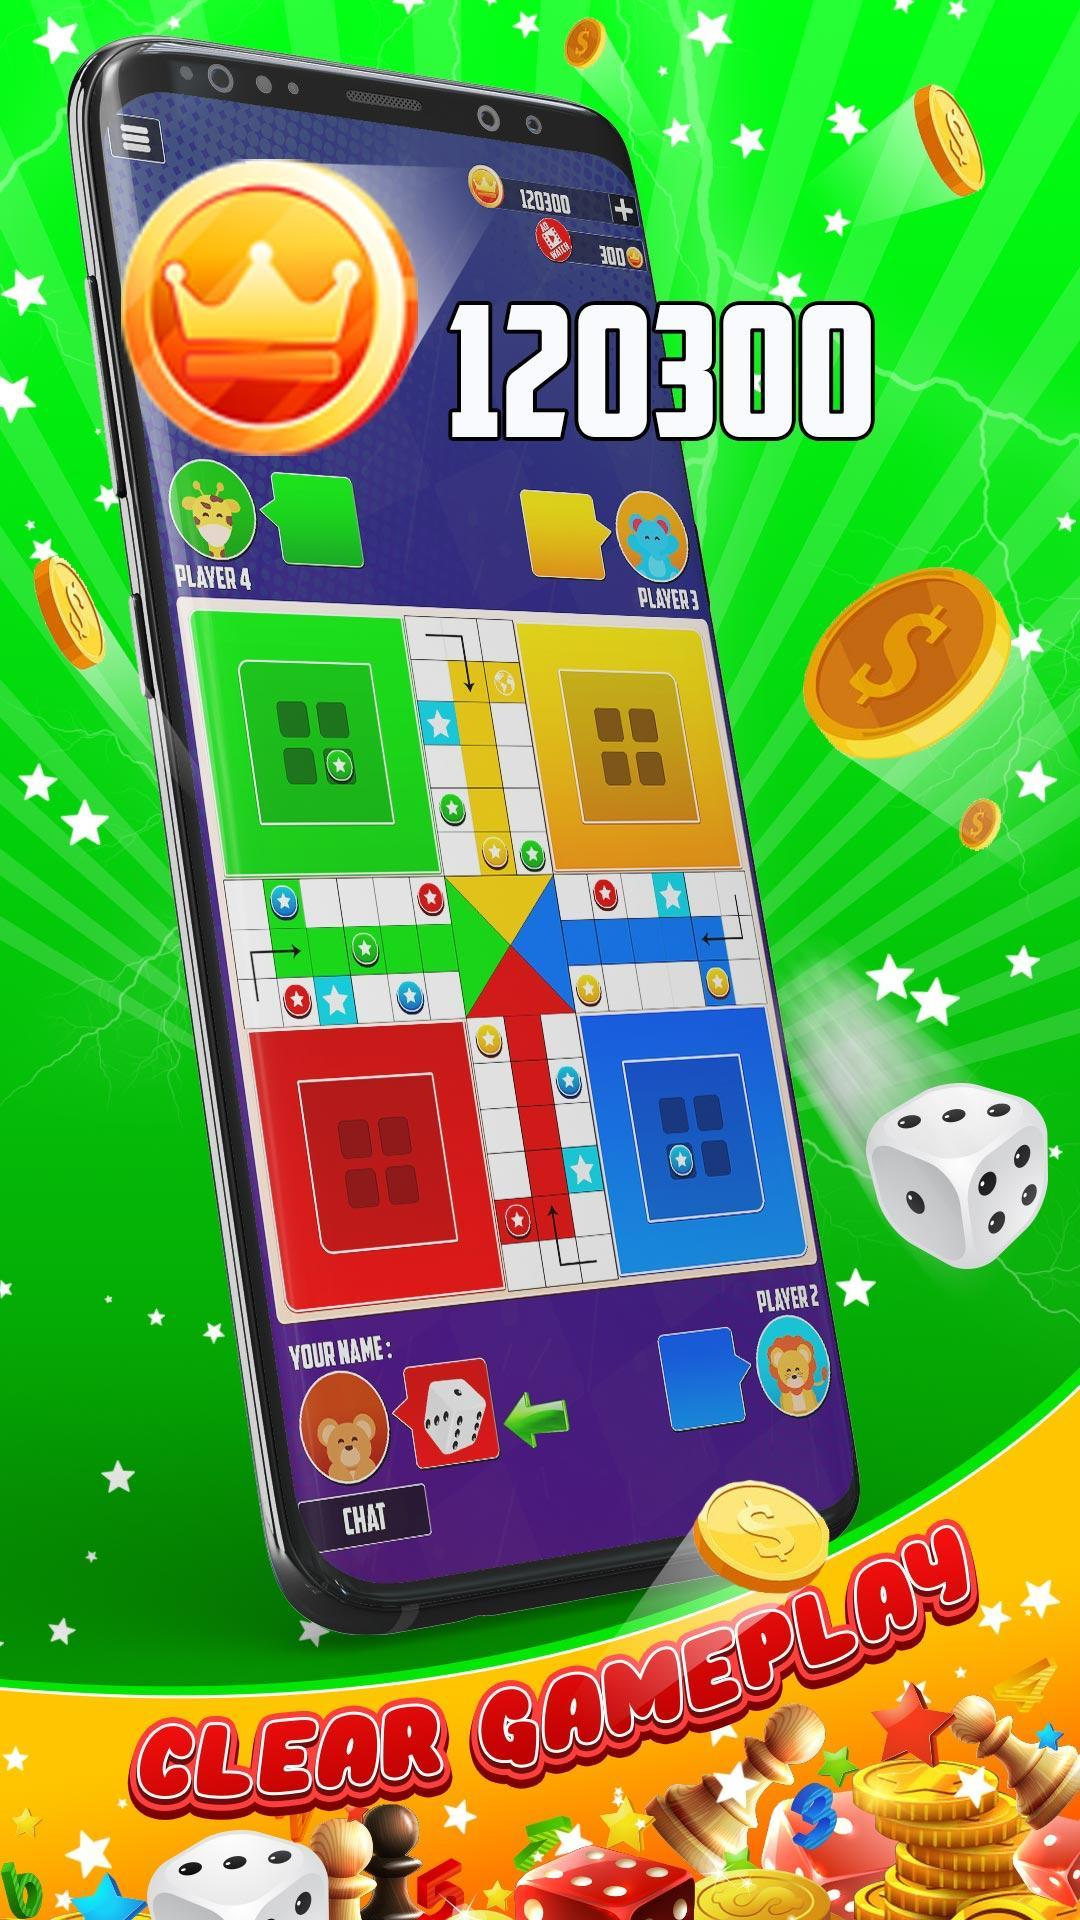 King of Ludo Dice Game with Free Voice Chat 2020 1.5.2 Screenshot 8